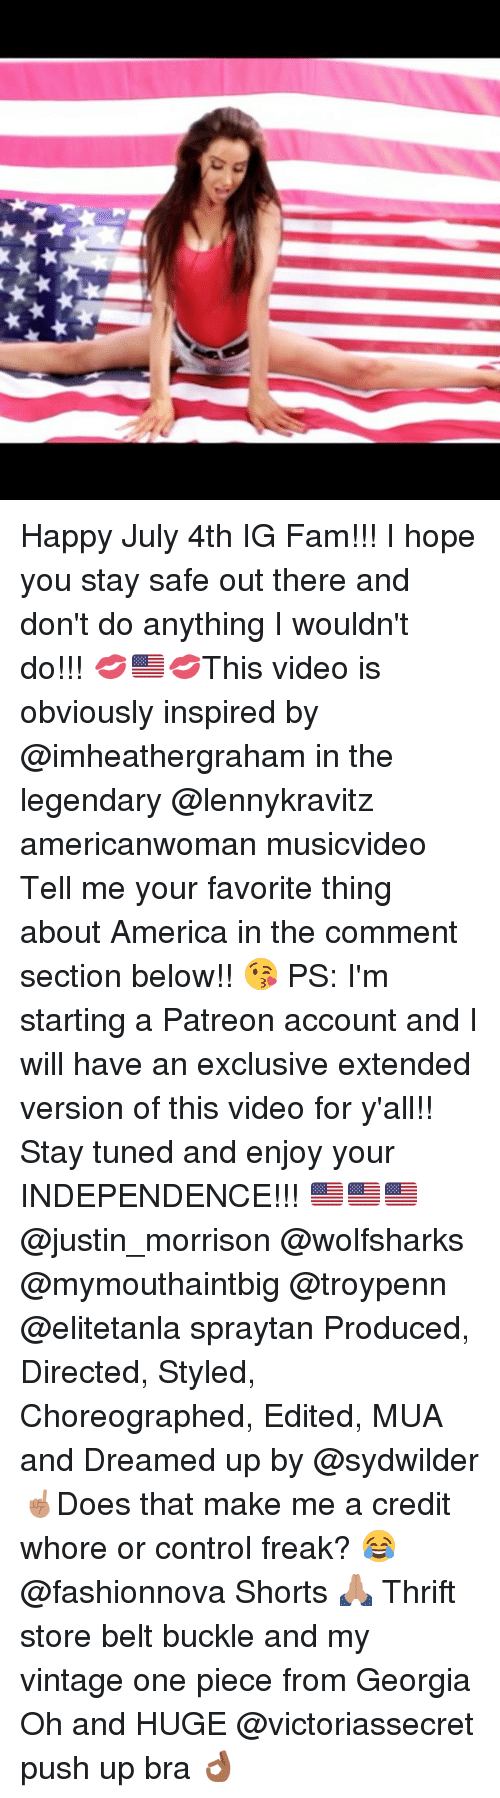 Stay Safe Out There: Happy July 4th IG Fam!!! I hope you stay safe out there and don't do anything I wouldn't do!!! 💋🇺🇸💋This video is obviously inspired by @imheathergraham in the legendary @lennykravitz americanwoman musicvideo Tell me your favorite thing about America in the comment section below!! 😘 PS: I'm starting a Patreon account and I will have an exclusive extended version of this video for y'all!! Stay tuned and enjoy your INDEPENDENCE!!! 🇺🇸🇺🇸🇺🇸 @justin_morrison @wolfsharks @mymouthaintbig @troypenn @elitetanla spraytan Produced, Directed, Styled, Choreographed, Edited, MUA and Dreamed up by @sydwilder ☝🏽Does that make me a credit whore or control freak? 😂 @fashionnova Shorts 🙏🏽 Thrift store belt buckle and my vintage one piece from Georgia Oh and HUGE @victoriassecret push up bra 👌🏾